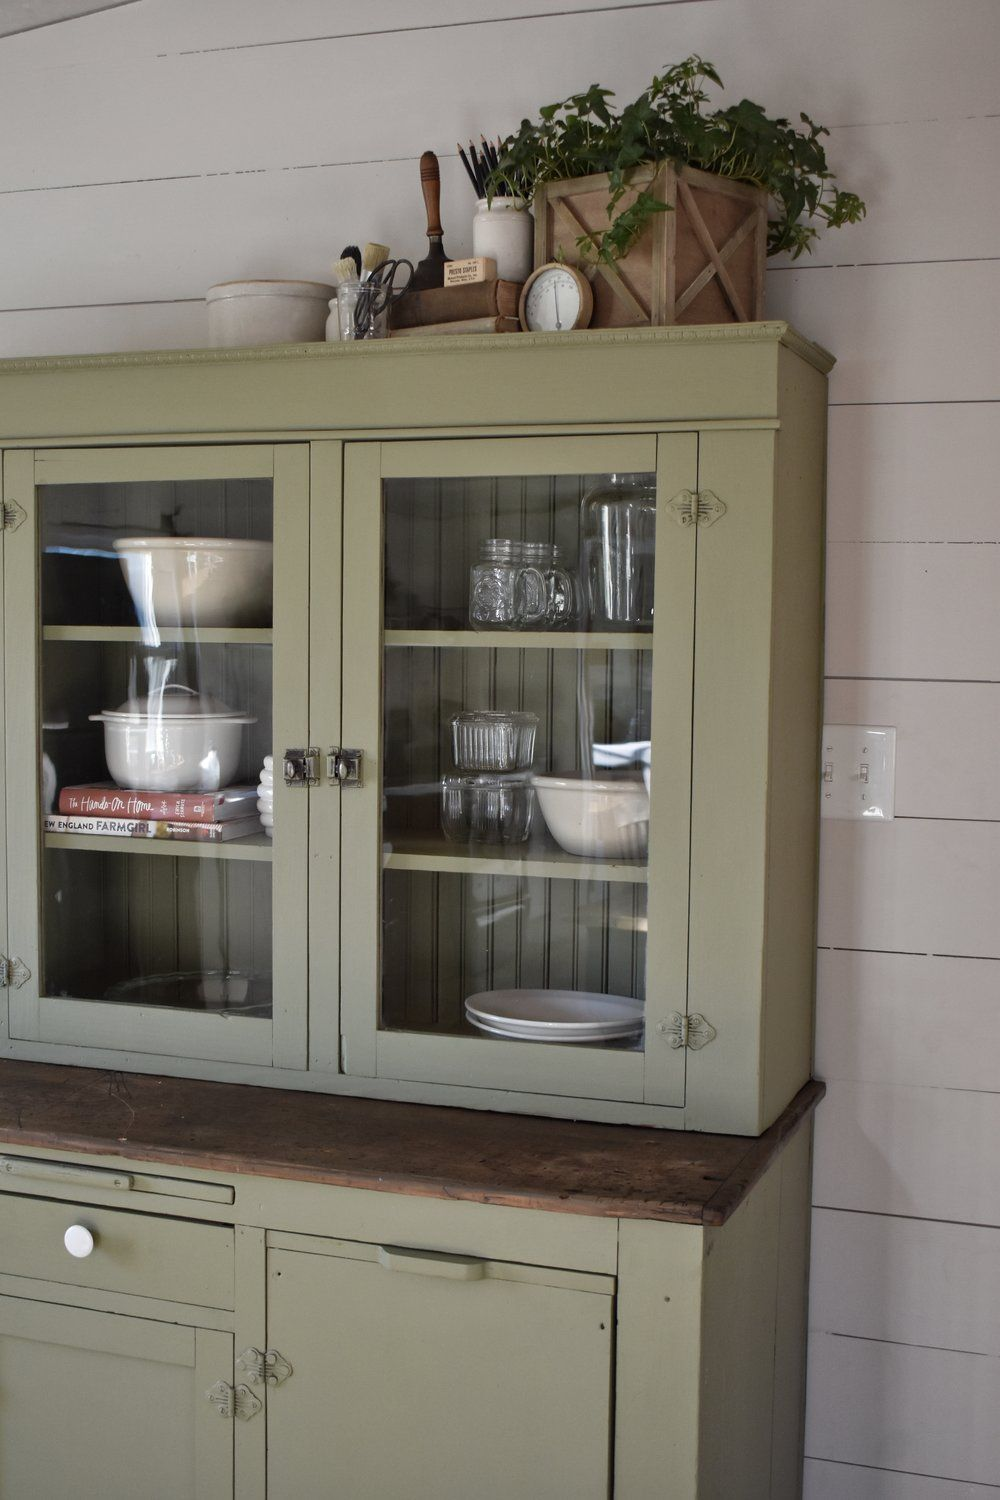 Old Farmhouse Style Furniture Has A Way Of Luring Me In I Love The Simple Straight Lines Shaker Pieces And Recently Was Browsing Local